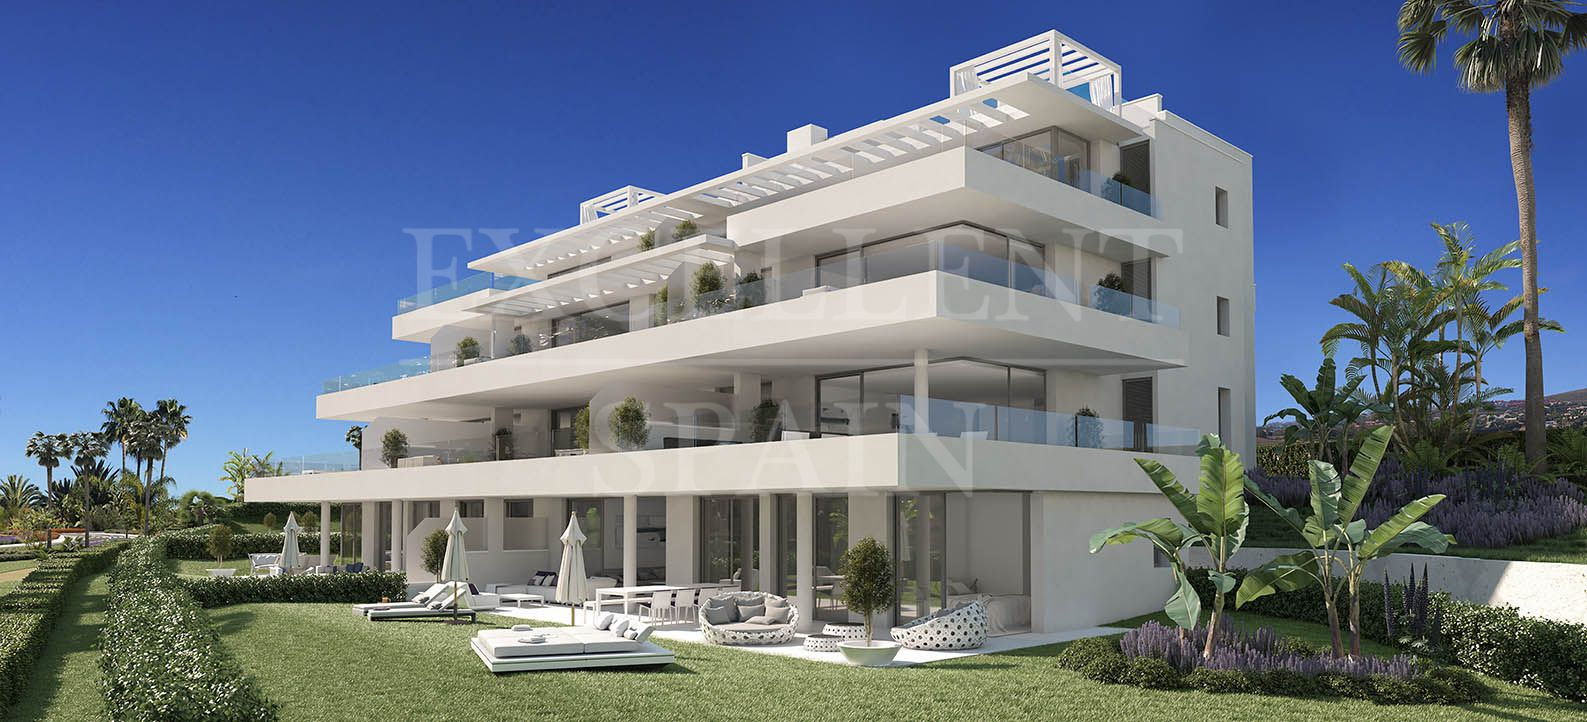 Cataleya, Estepona - Luxe, moderne appartementen en penthouses in Atalaya, New Golden Mile, Costa del Sol